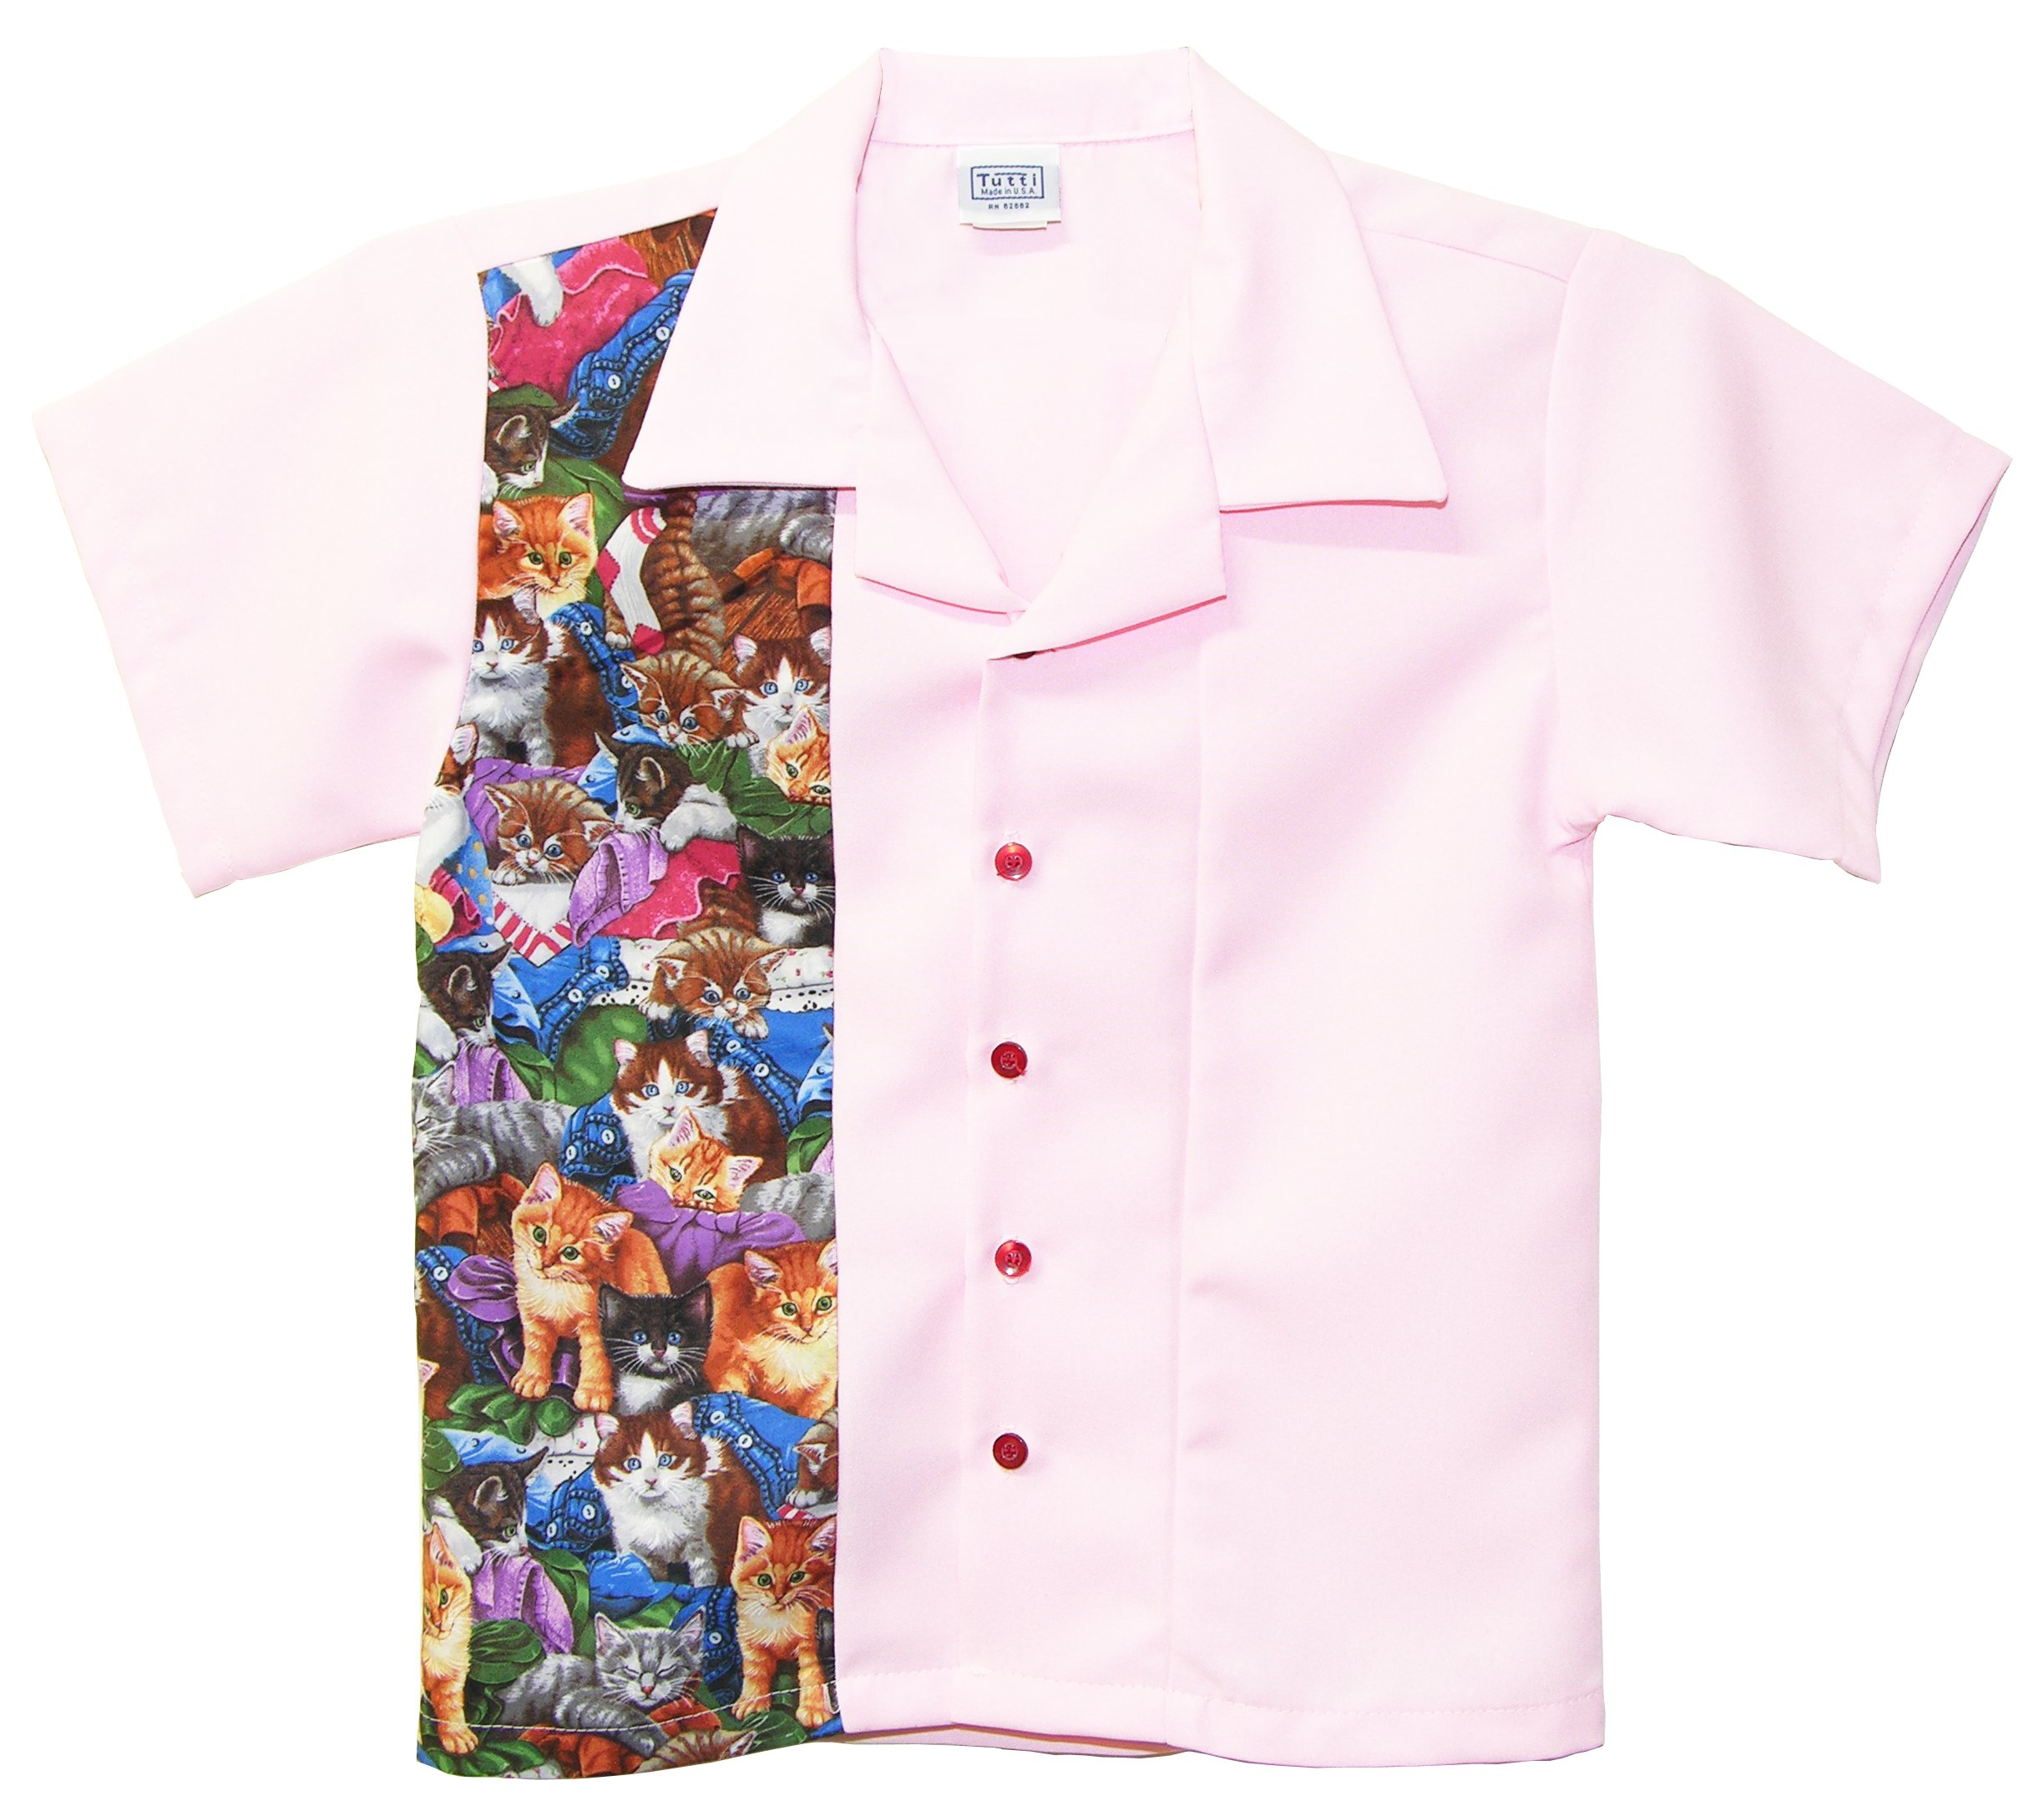 Kids Bowling Shirt Children Size Pink with Cute Cat Print (Medium 4-5 Yrs Old) by Tutti